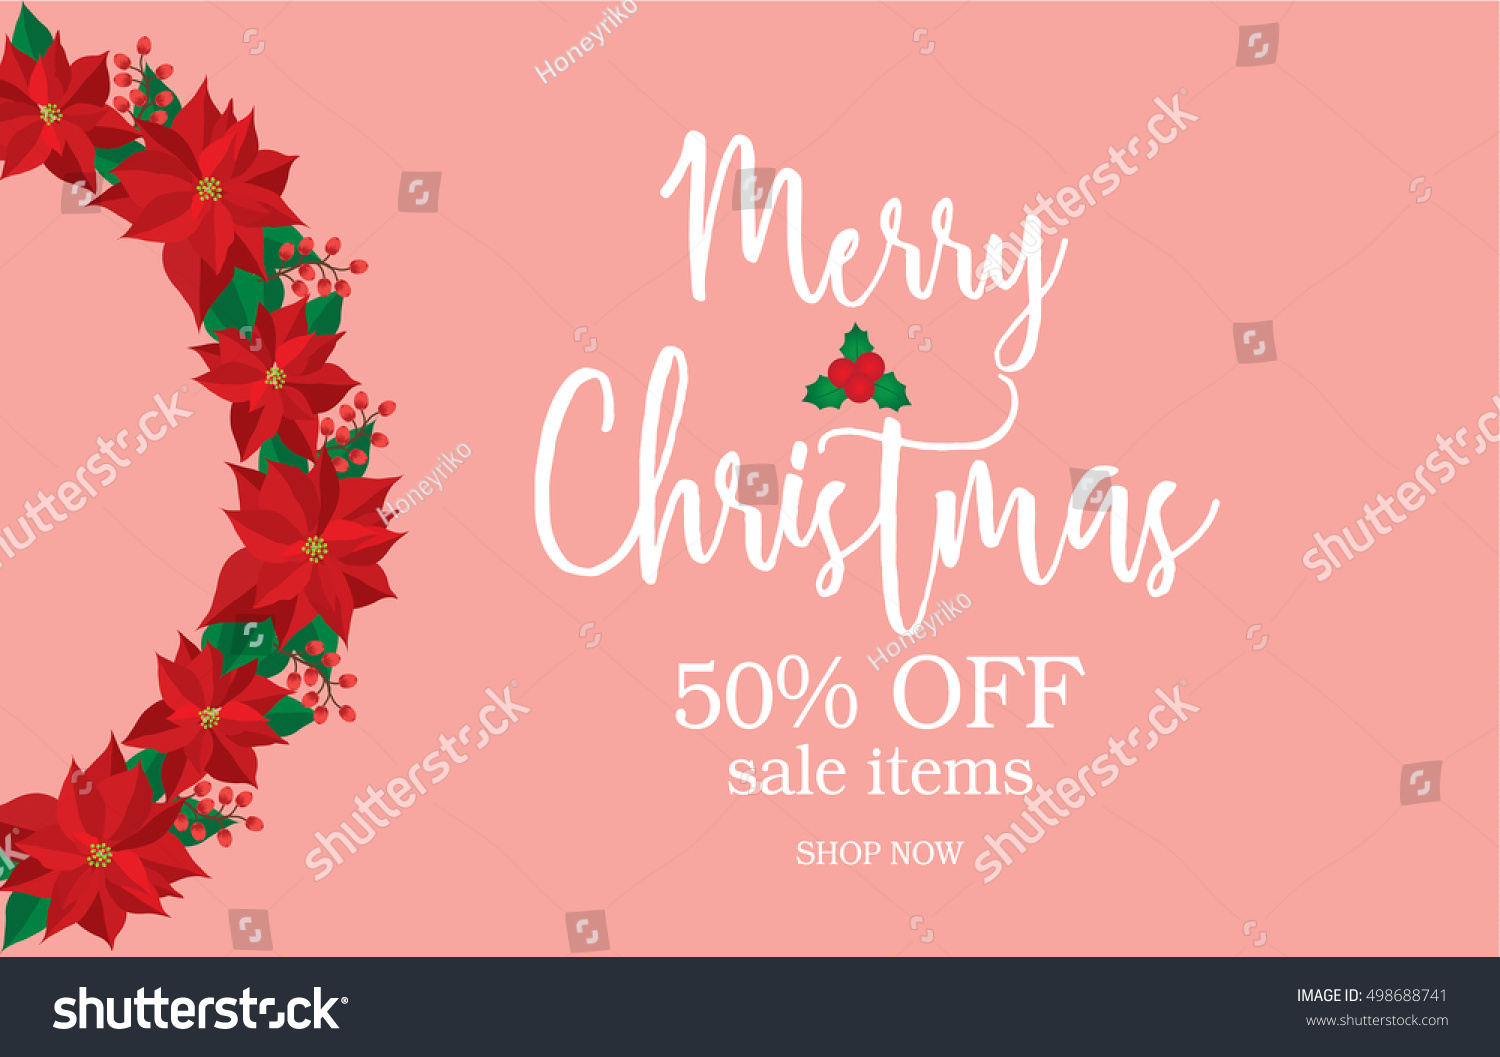 Merry Christmas Sale Banner Red Poinsettiasale Stock